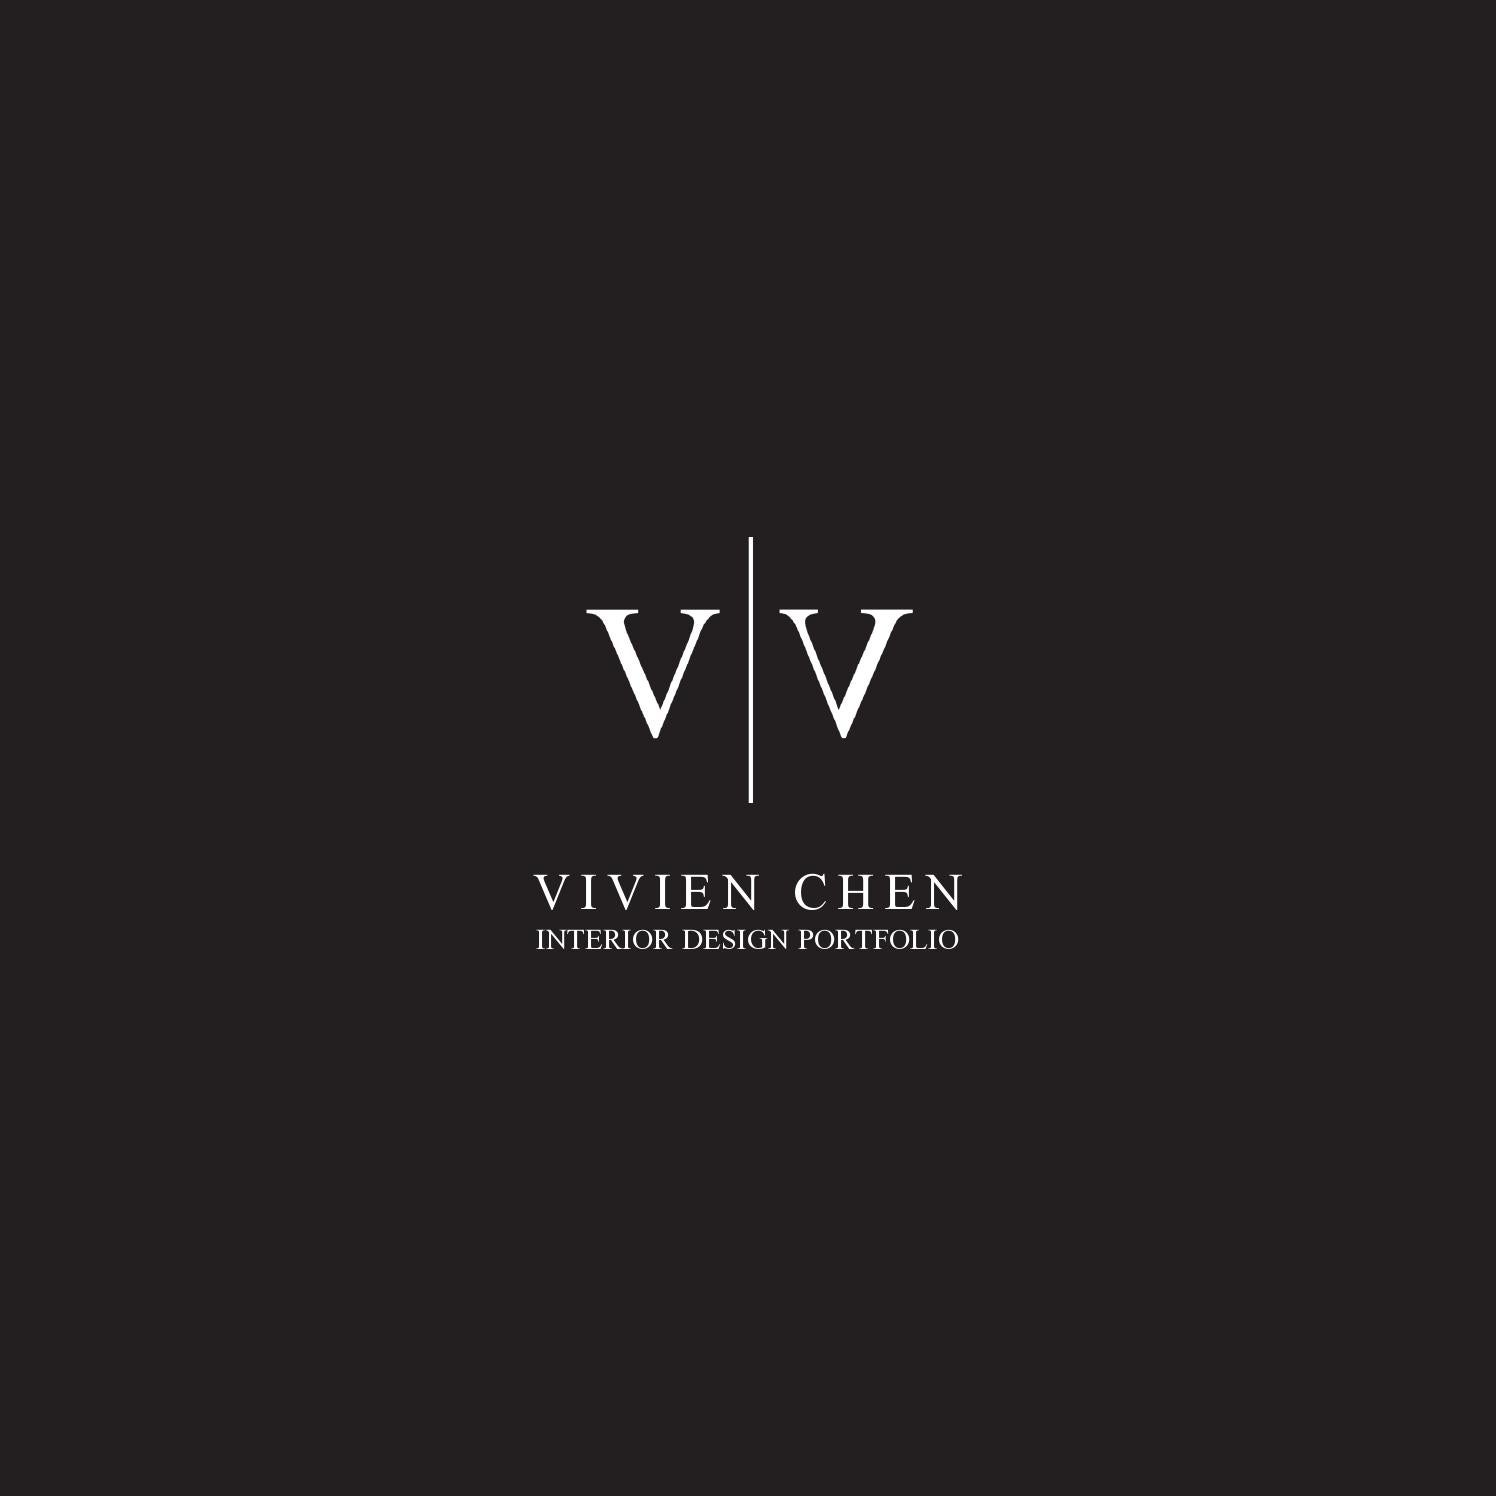 Vivien chen interior design portfolio by vivien chen issuu for Interior designs logos